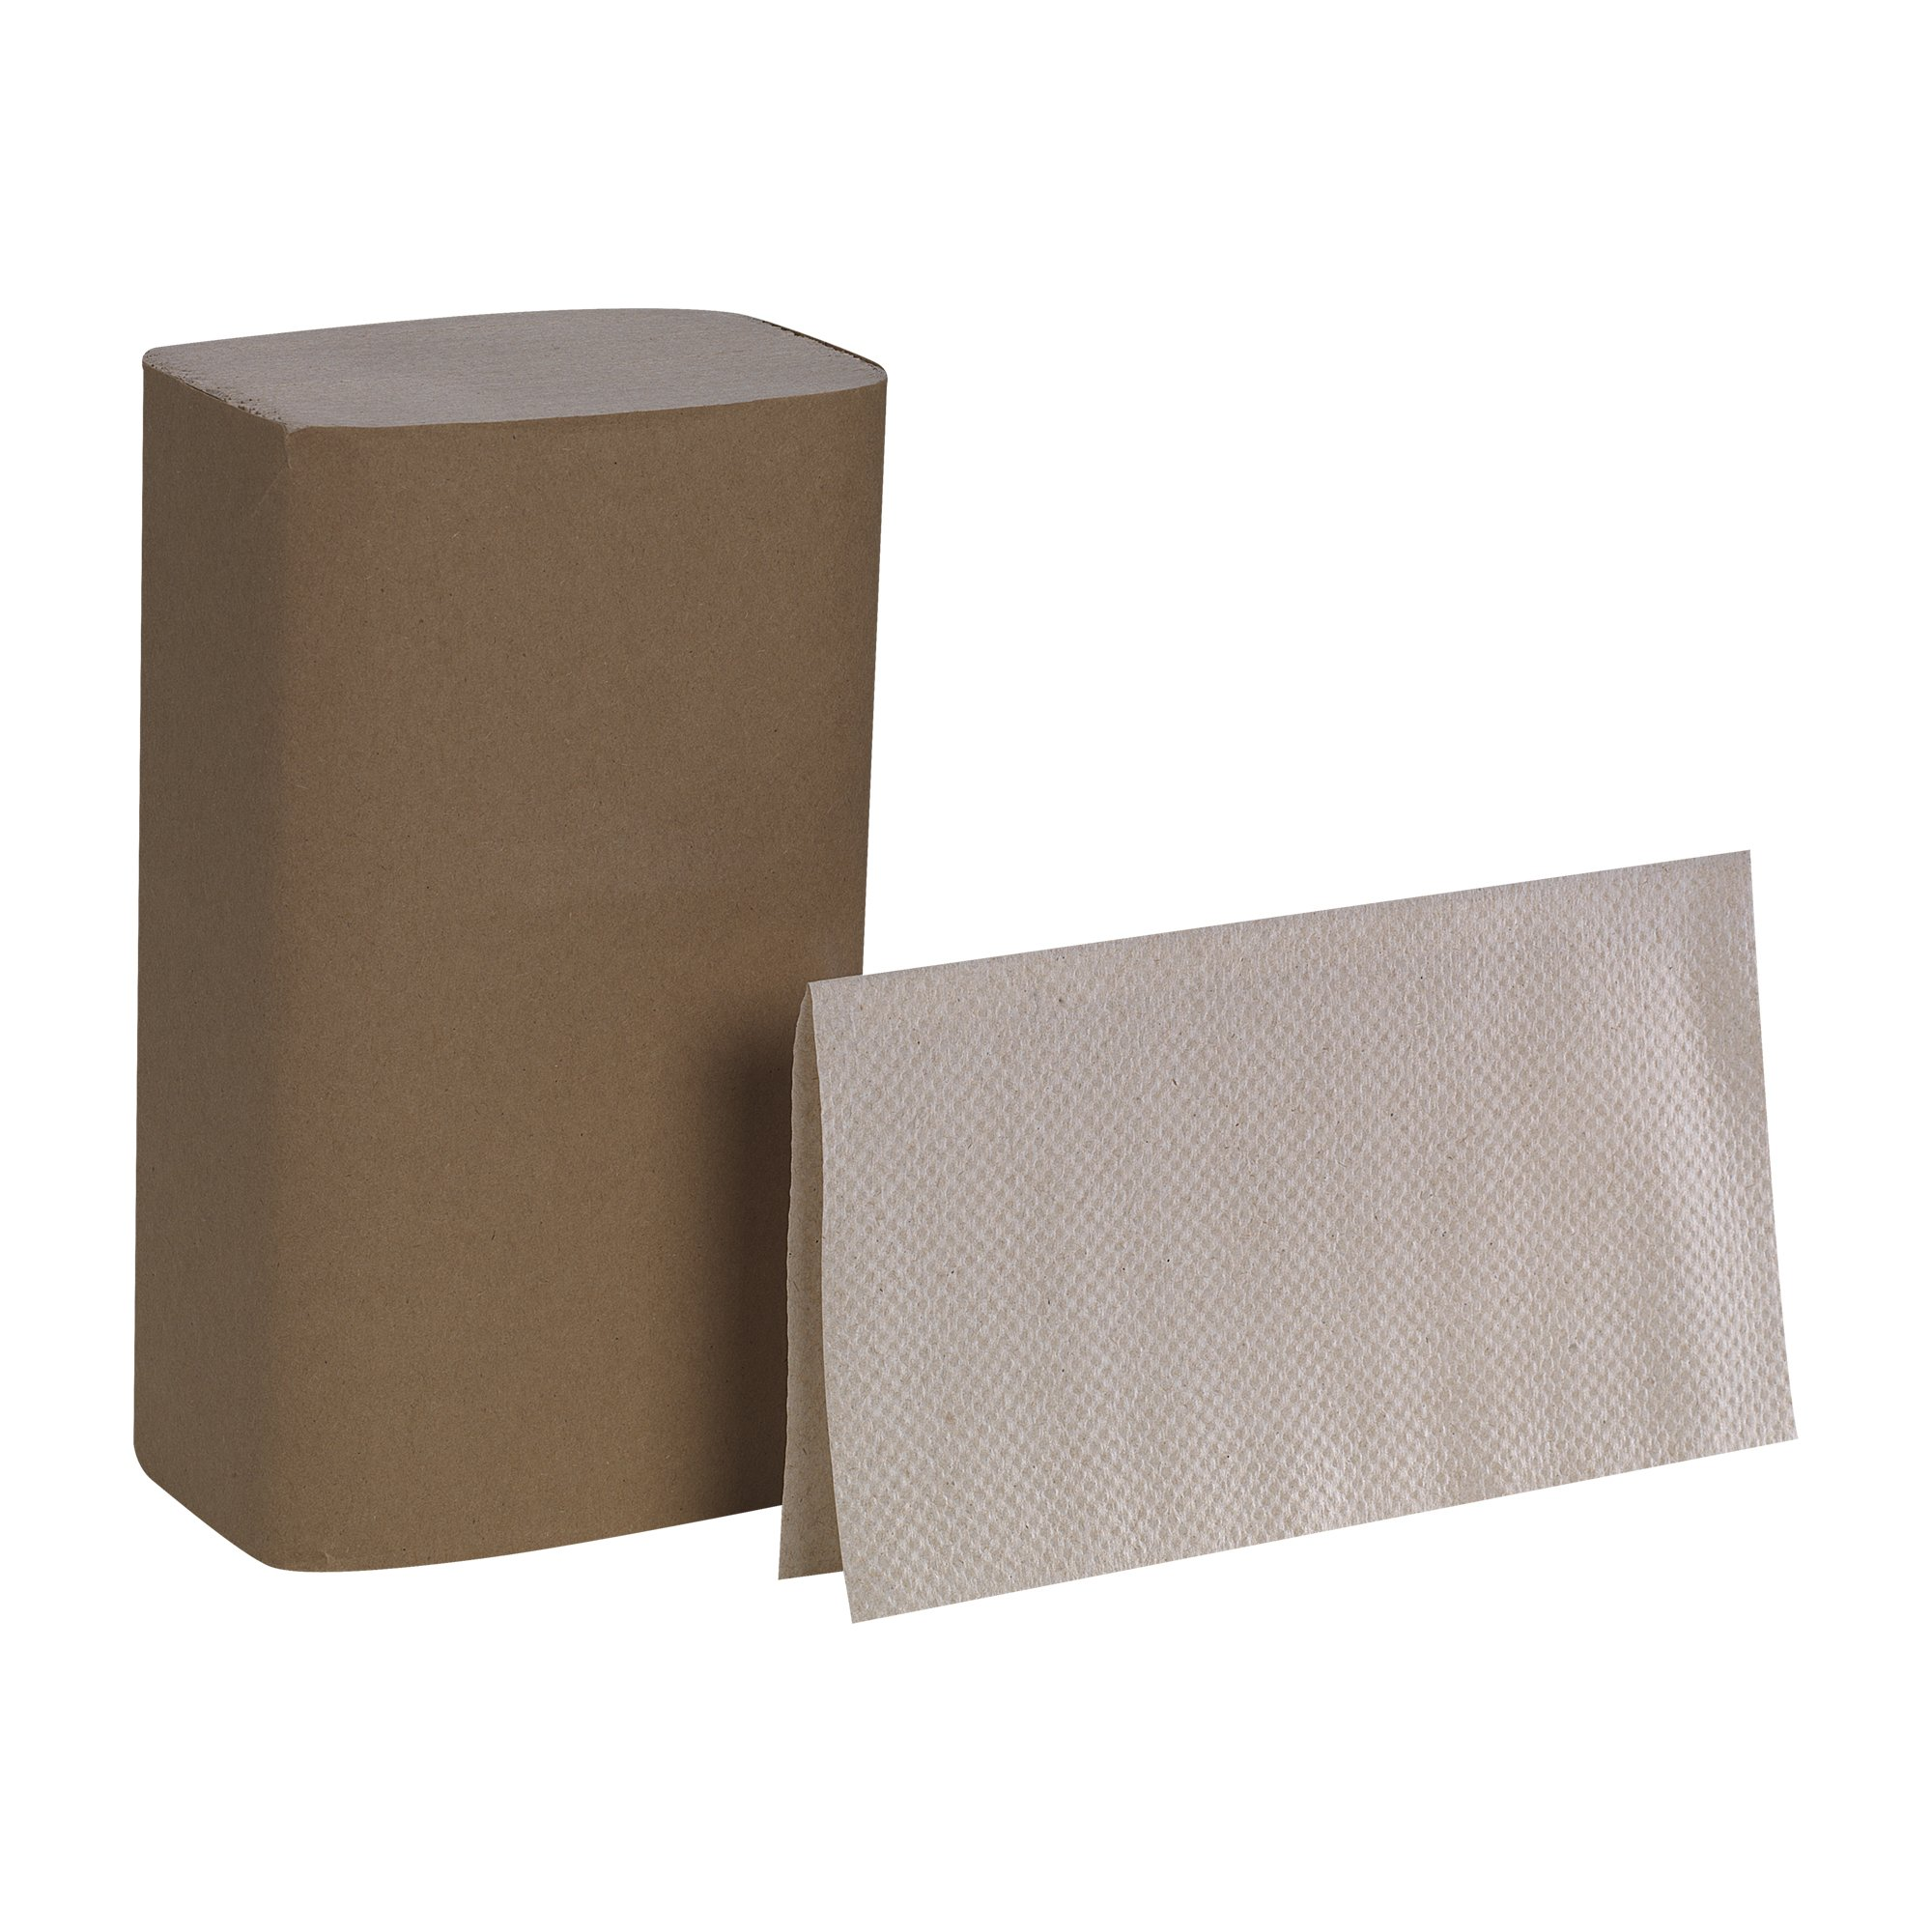 Pacific Blue Basic S-Fold Recycled Paper Towel by GP PRO, Brown, 23504